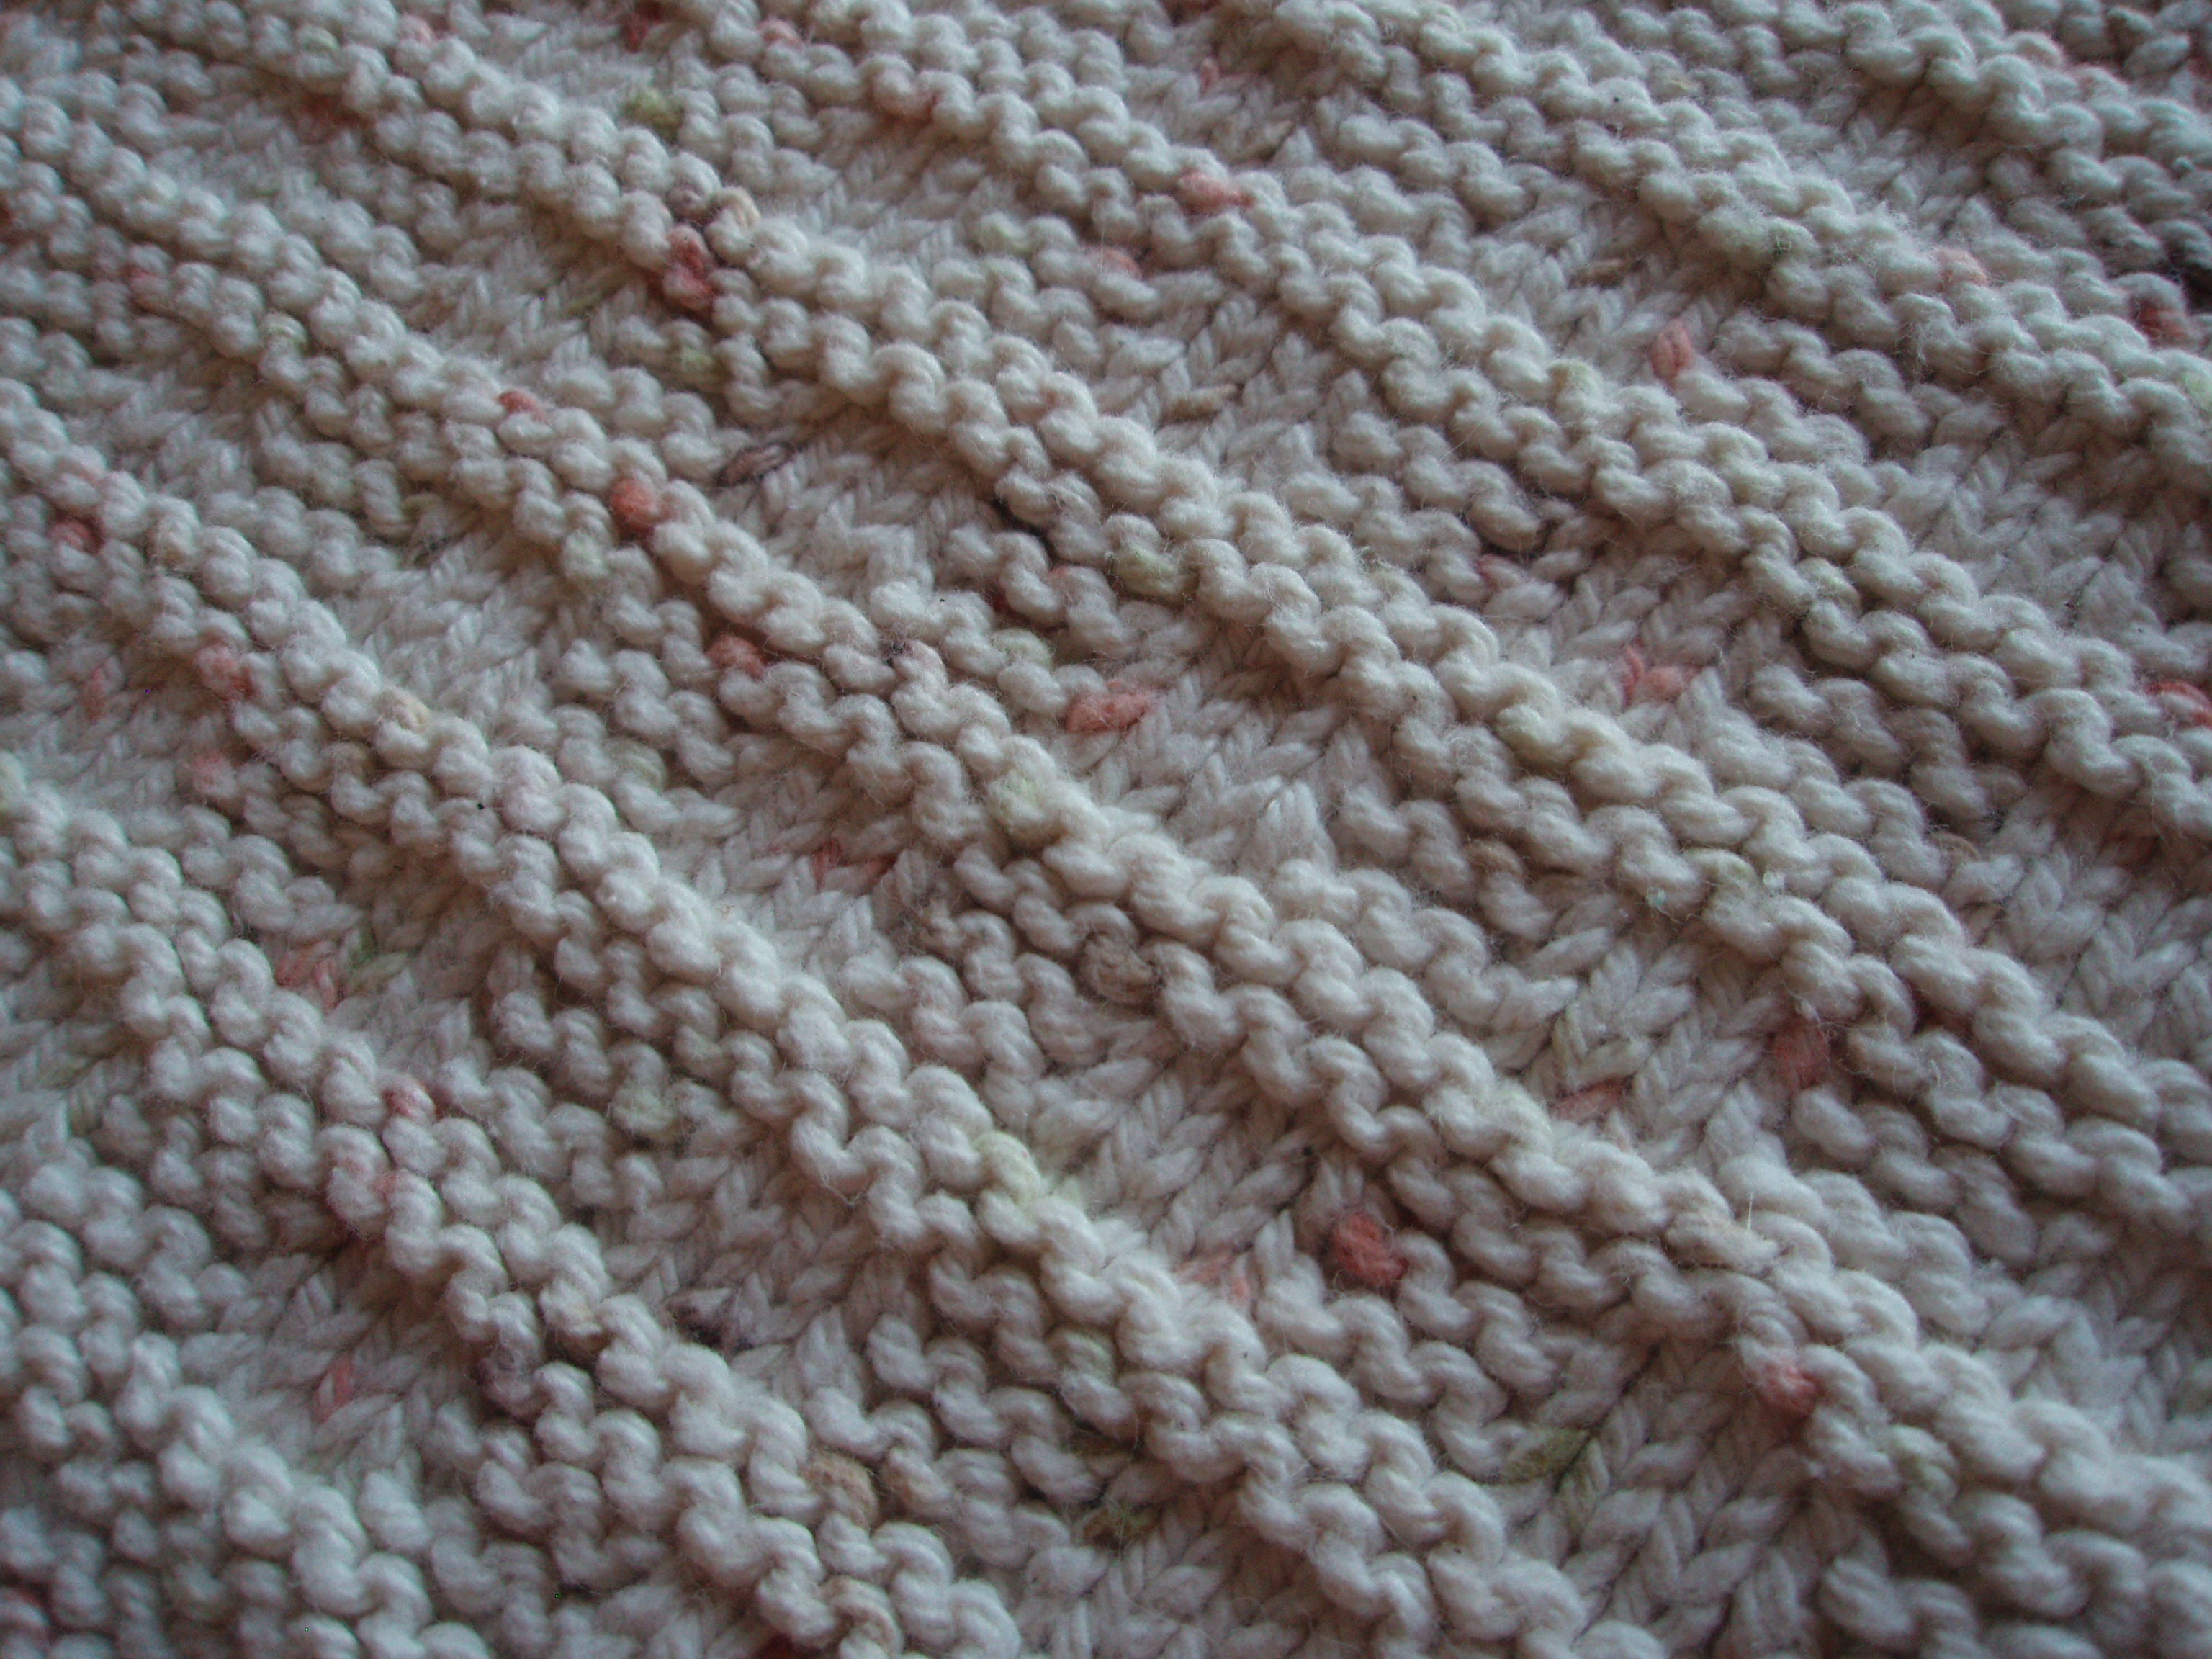 Knitting Patterns For Texture : 1000+ images about texture on Pinterest Victorian, Wood texture and Retro b...